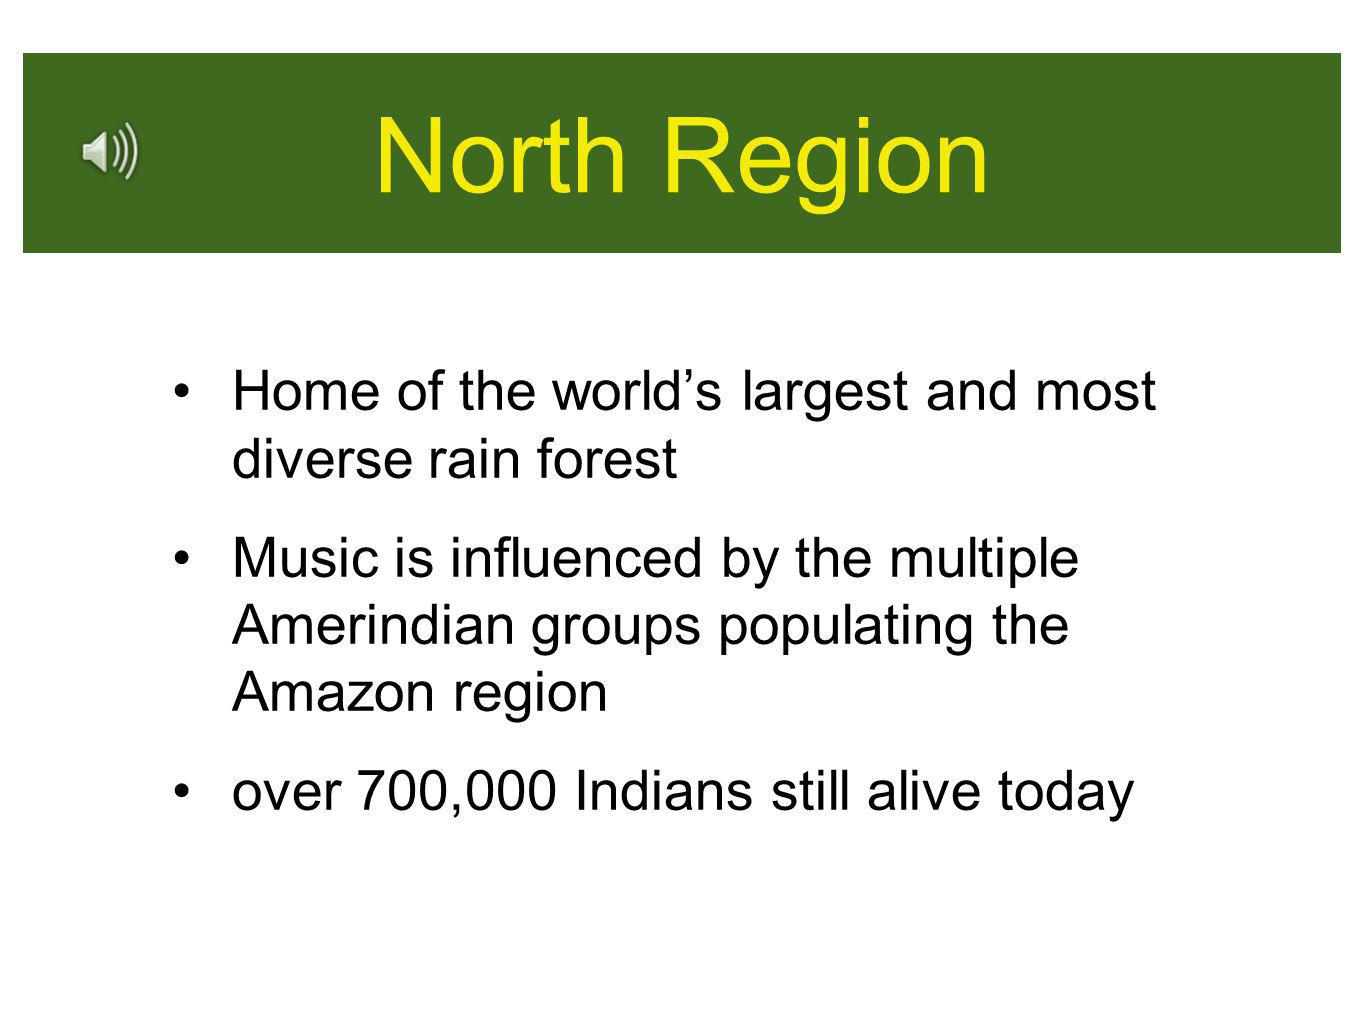 North Region Home of the world's largest and most diverse rain forest